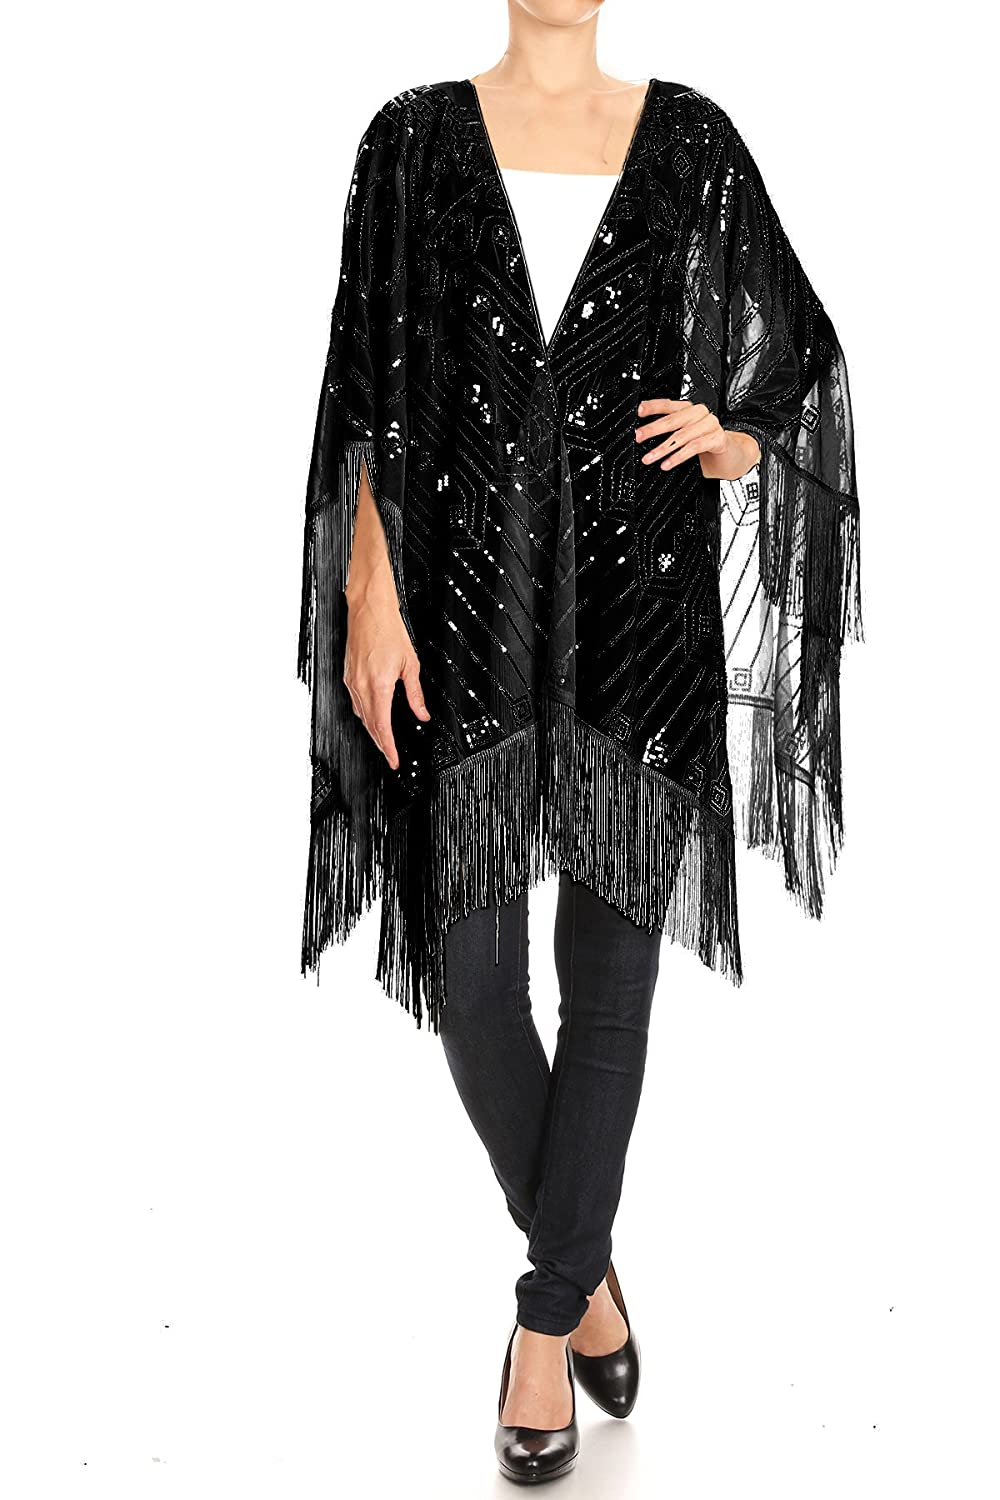 1920s Coats, Furs, Jackets and Capes History Anna-Kaci Womens Oversized Hand Beaded and Sequin Evening Shawl Wrap with Fringe $26.90 AT vintagedancer.com